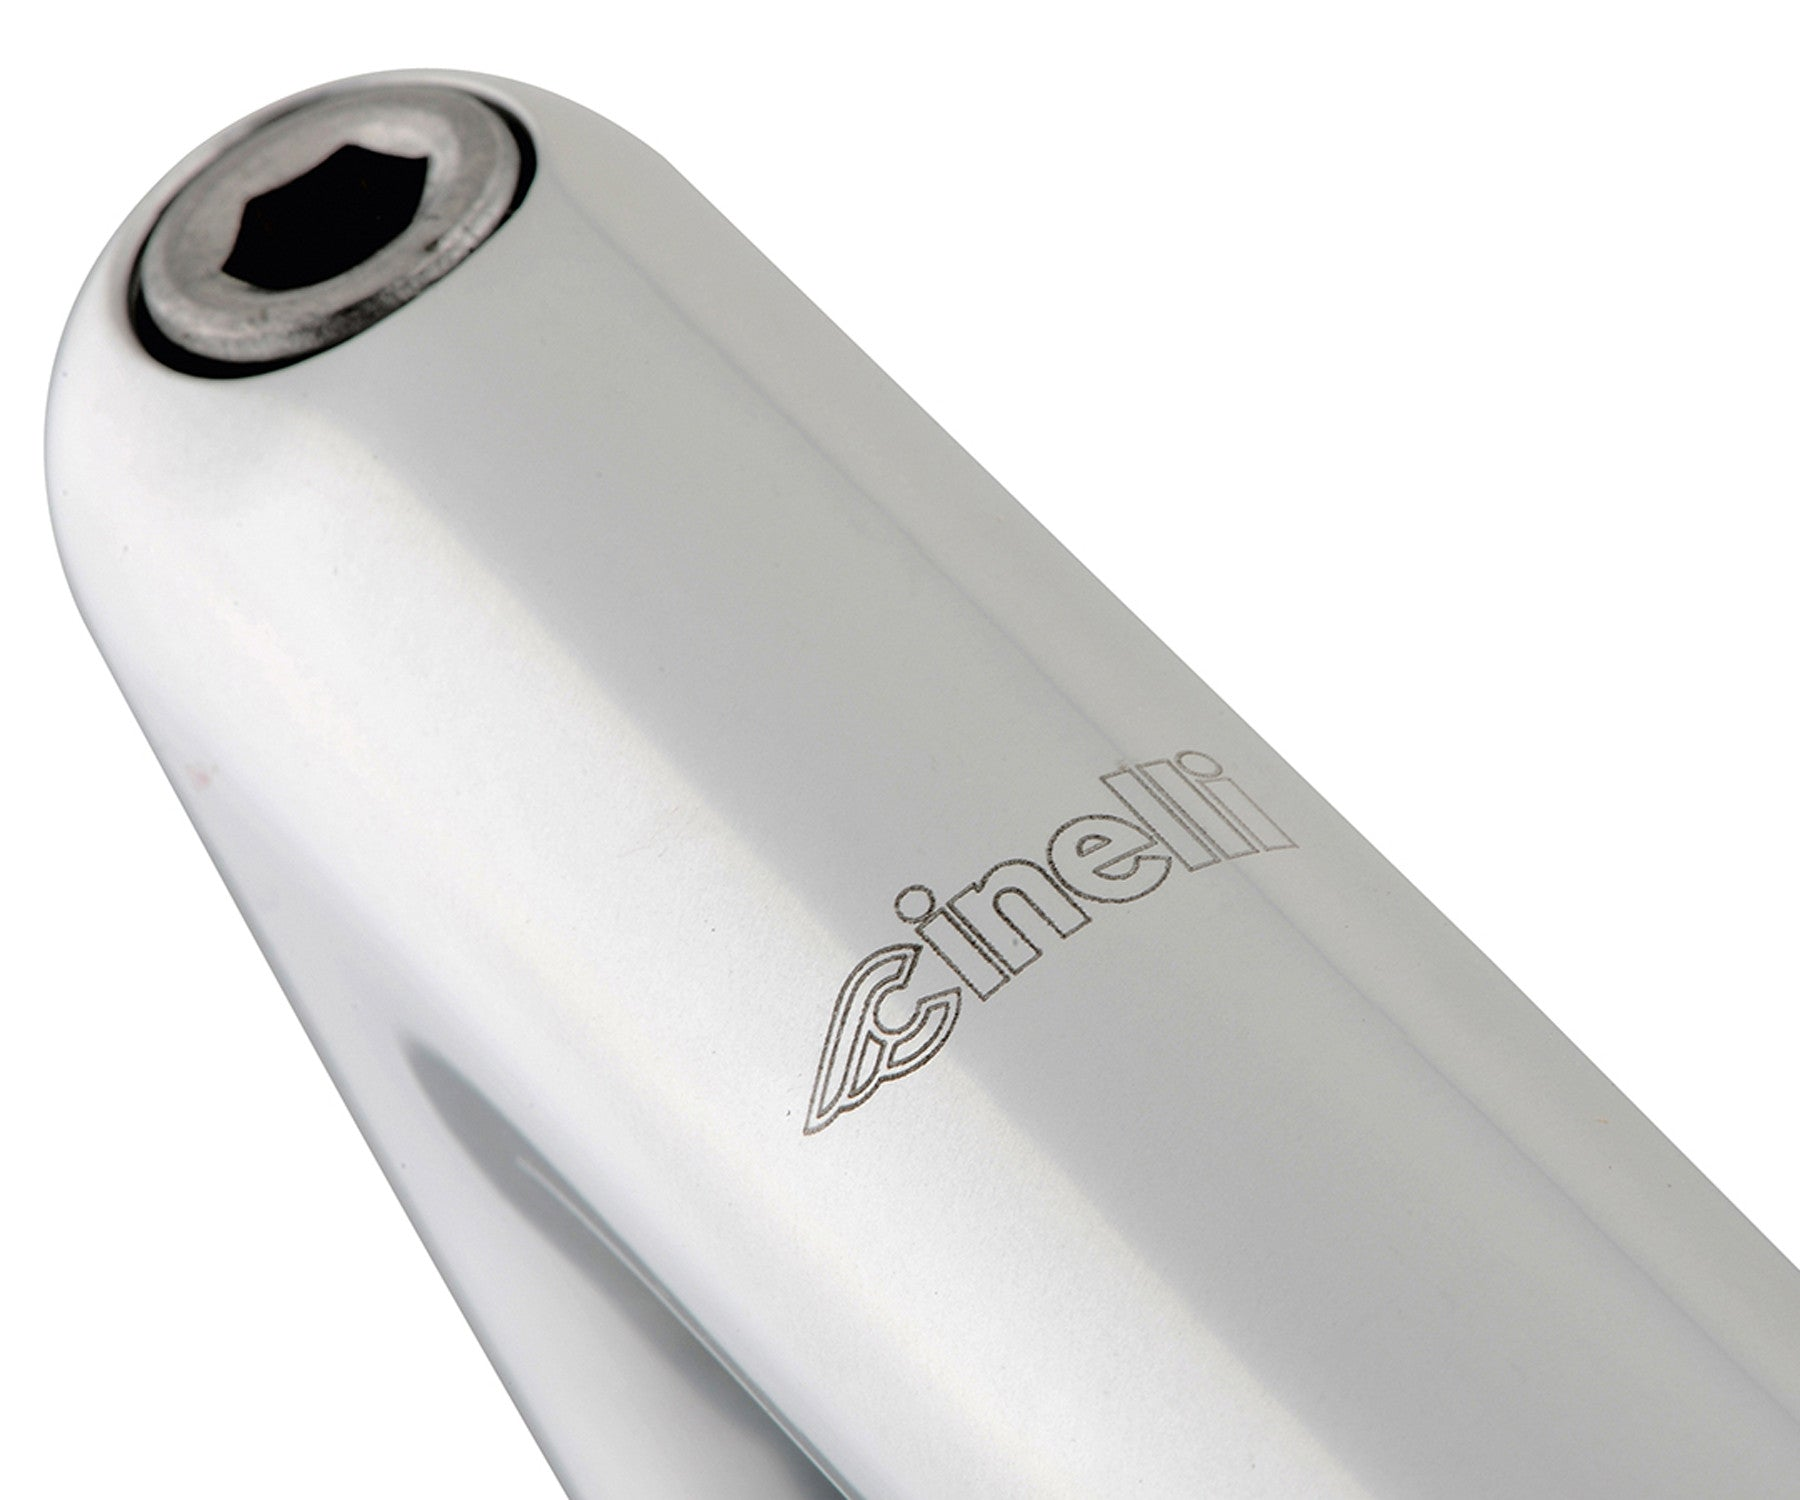 Cinelli 1A quill stem - Retrogression